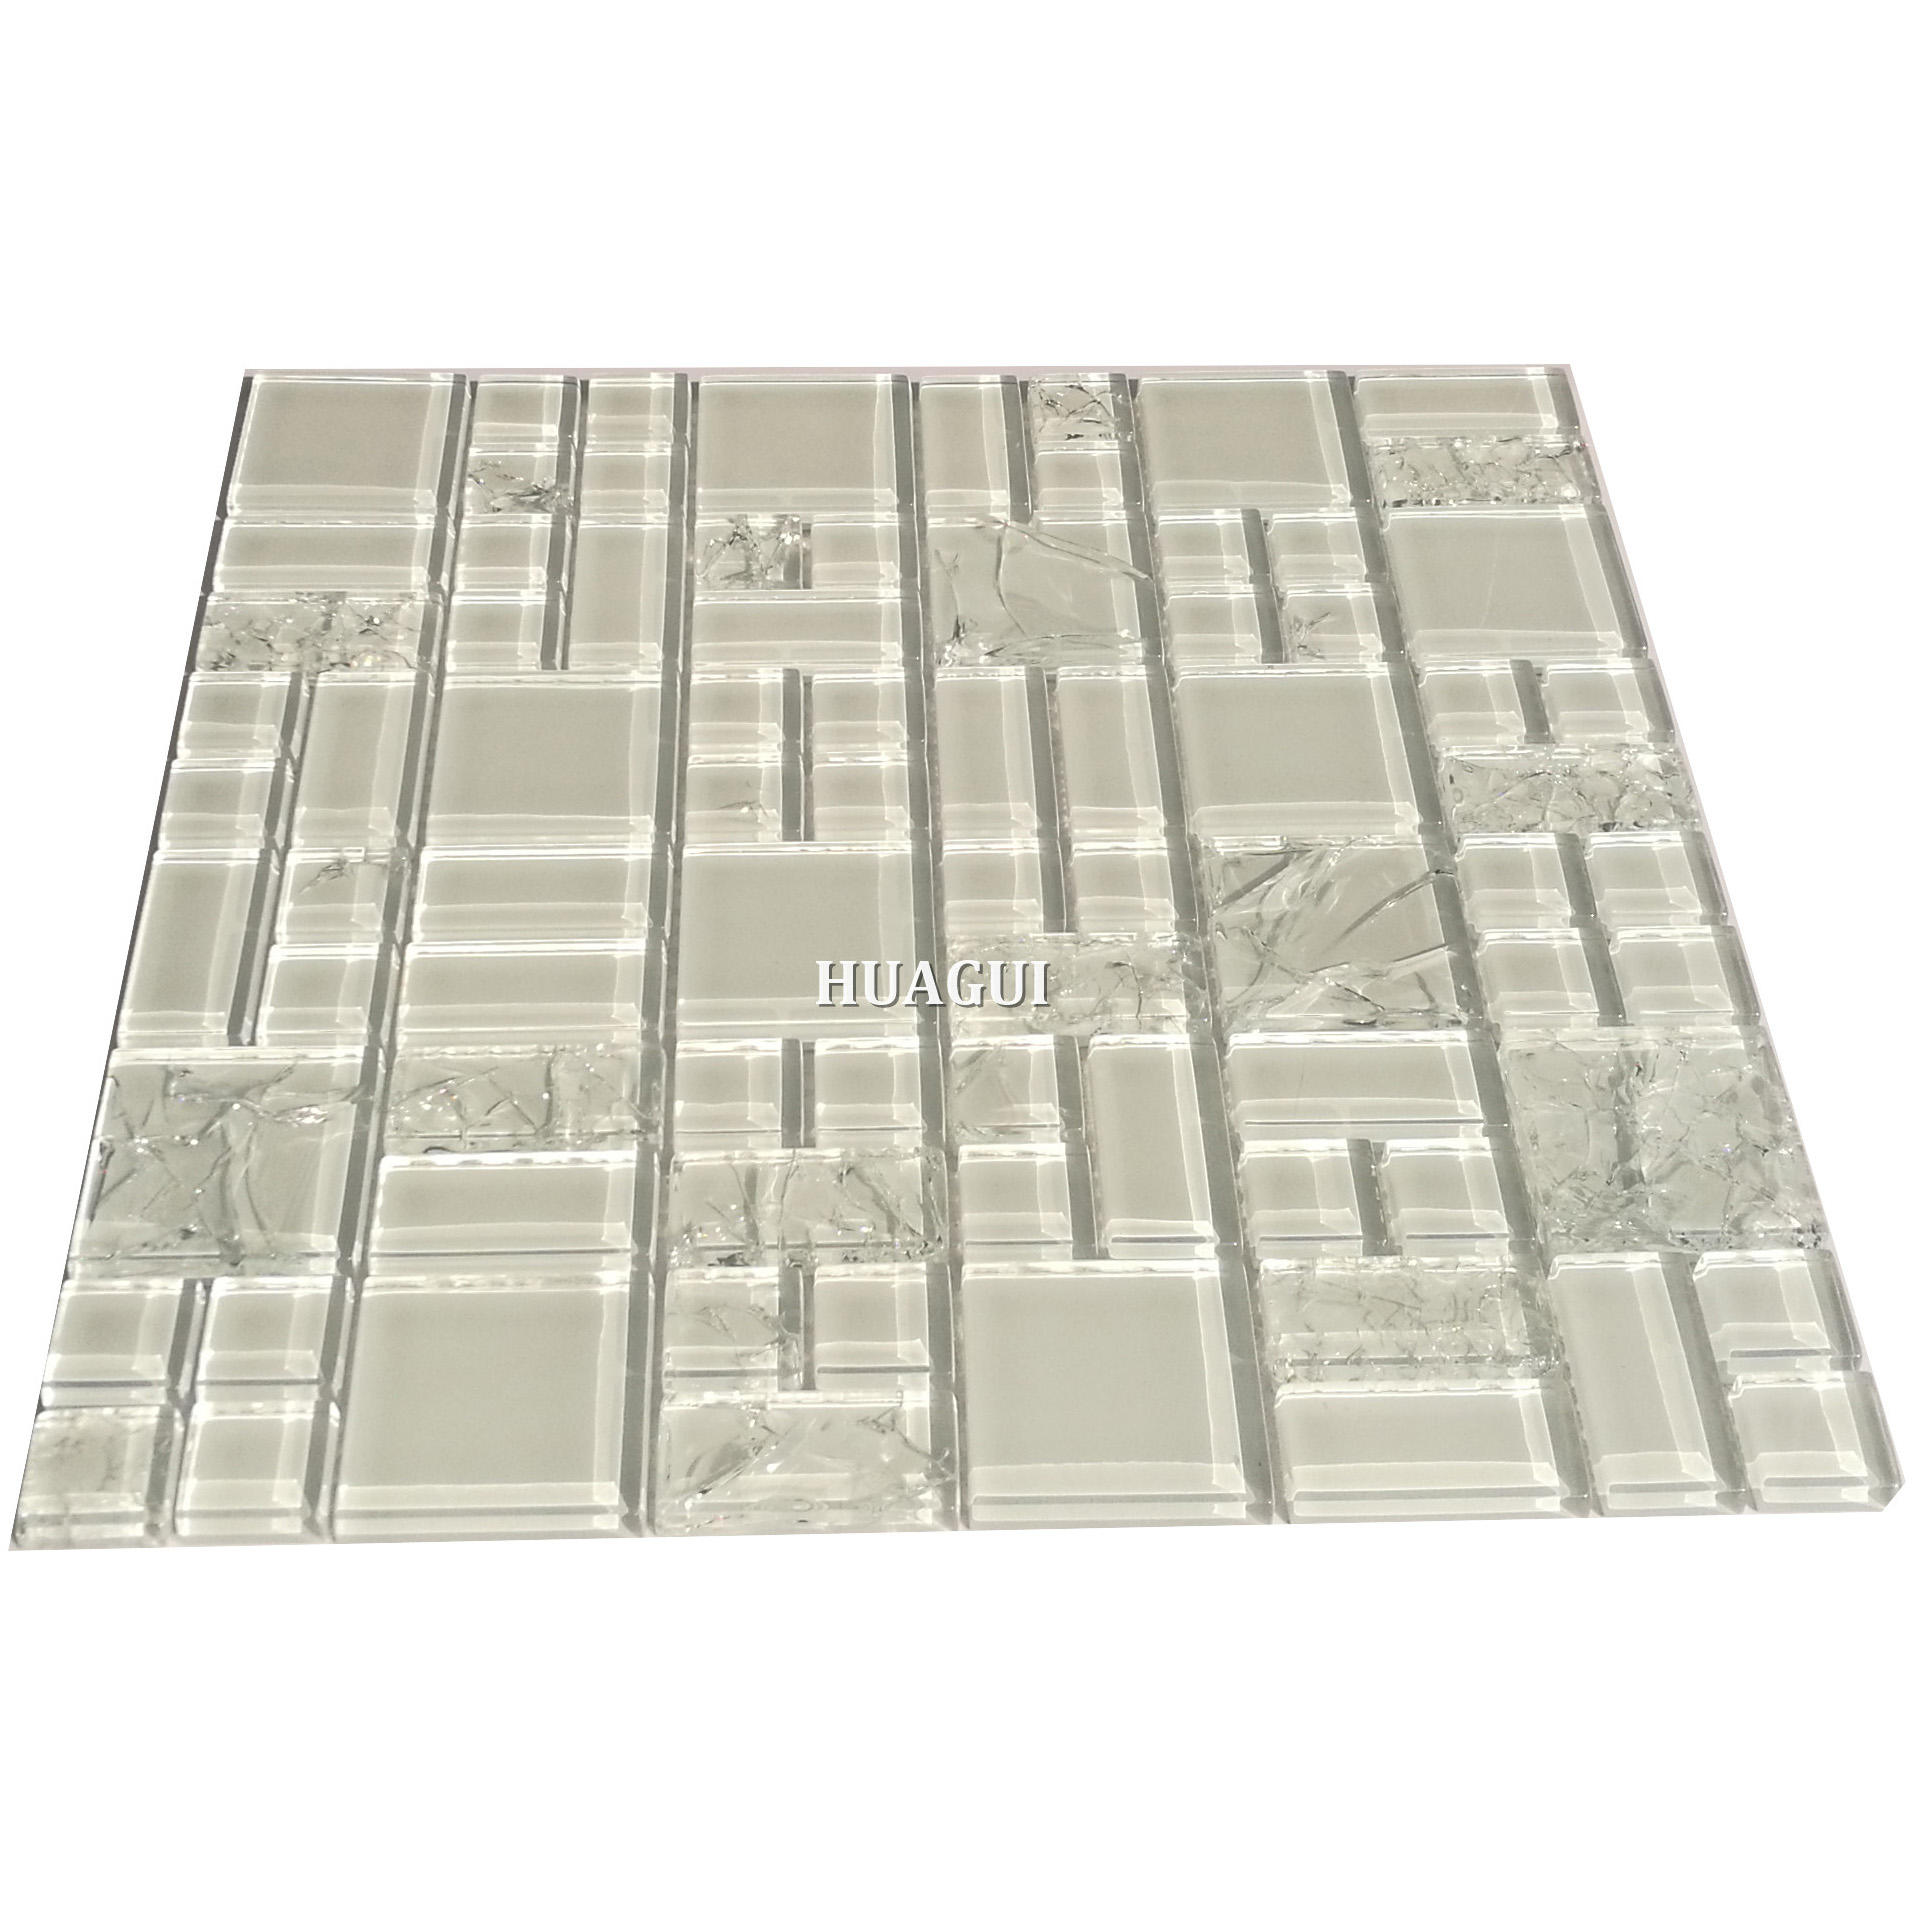 Fashion ice crack white crystal glass bathroom mosaic tiles